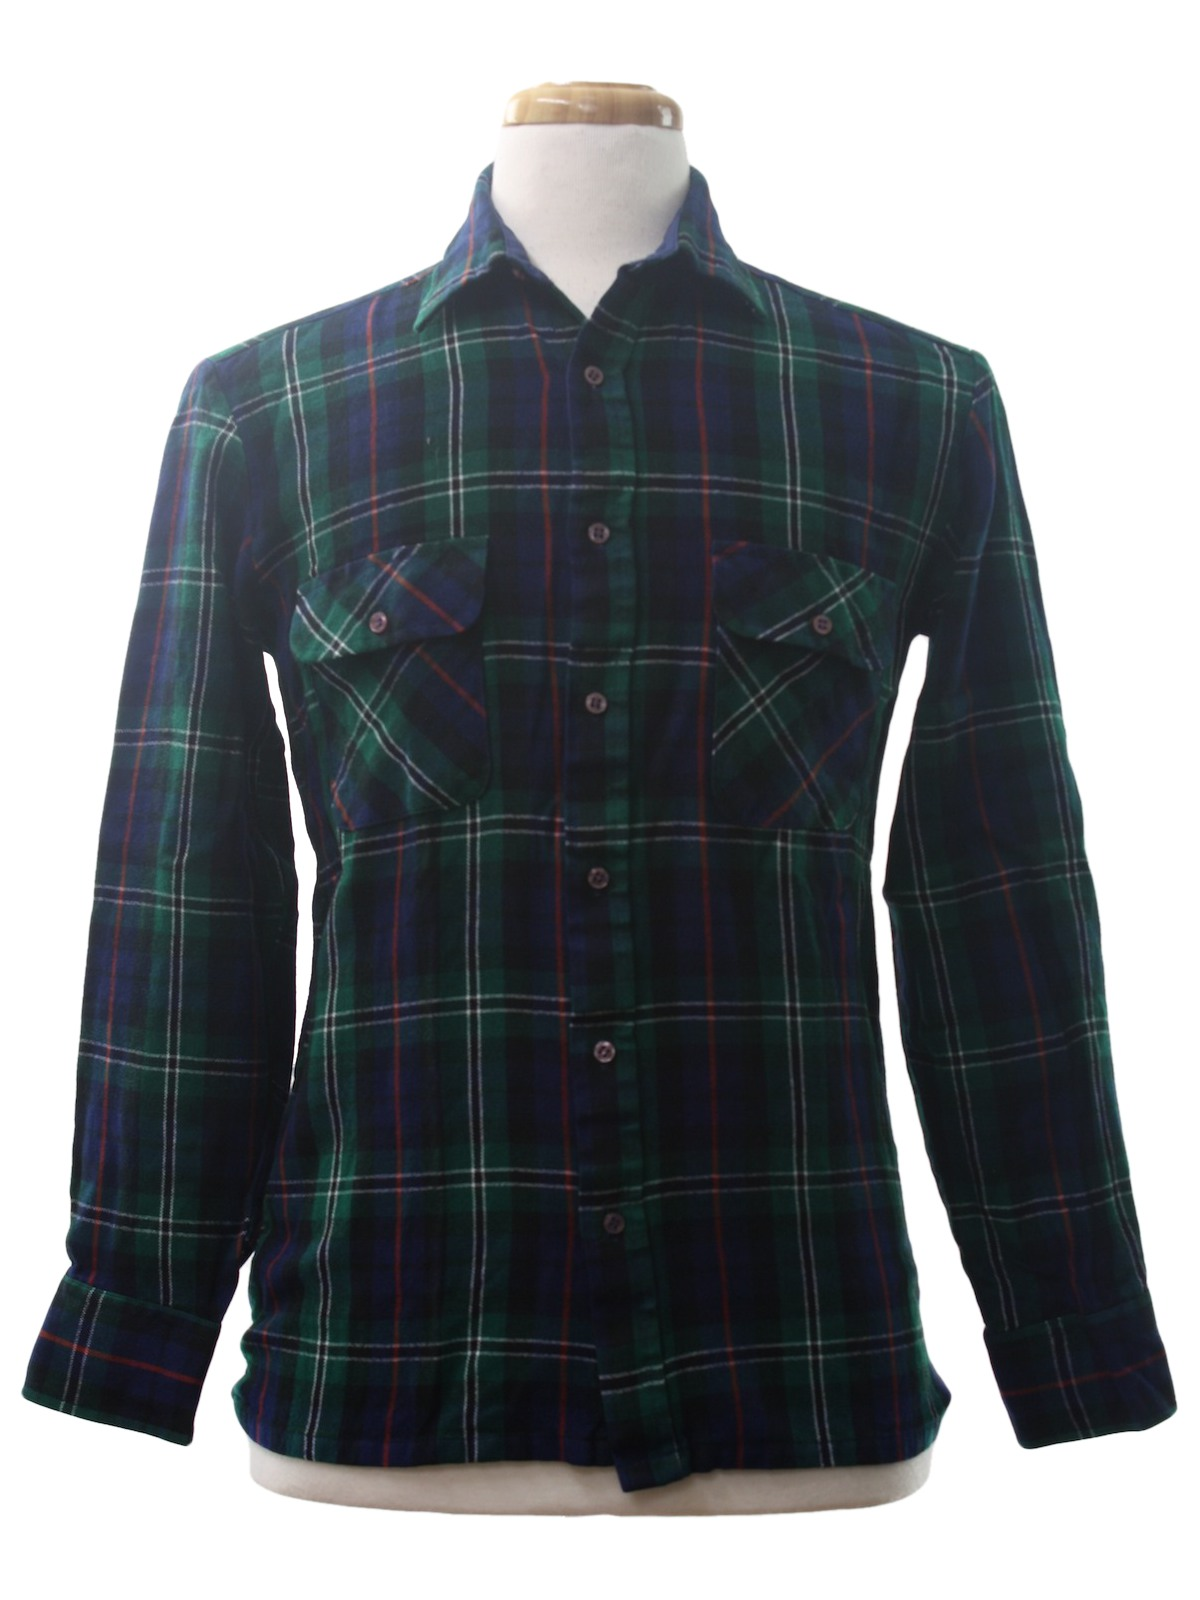 1980 39 s retro shirt 80s backpacker mens navy blue green for Navy blue and red flannel shirt